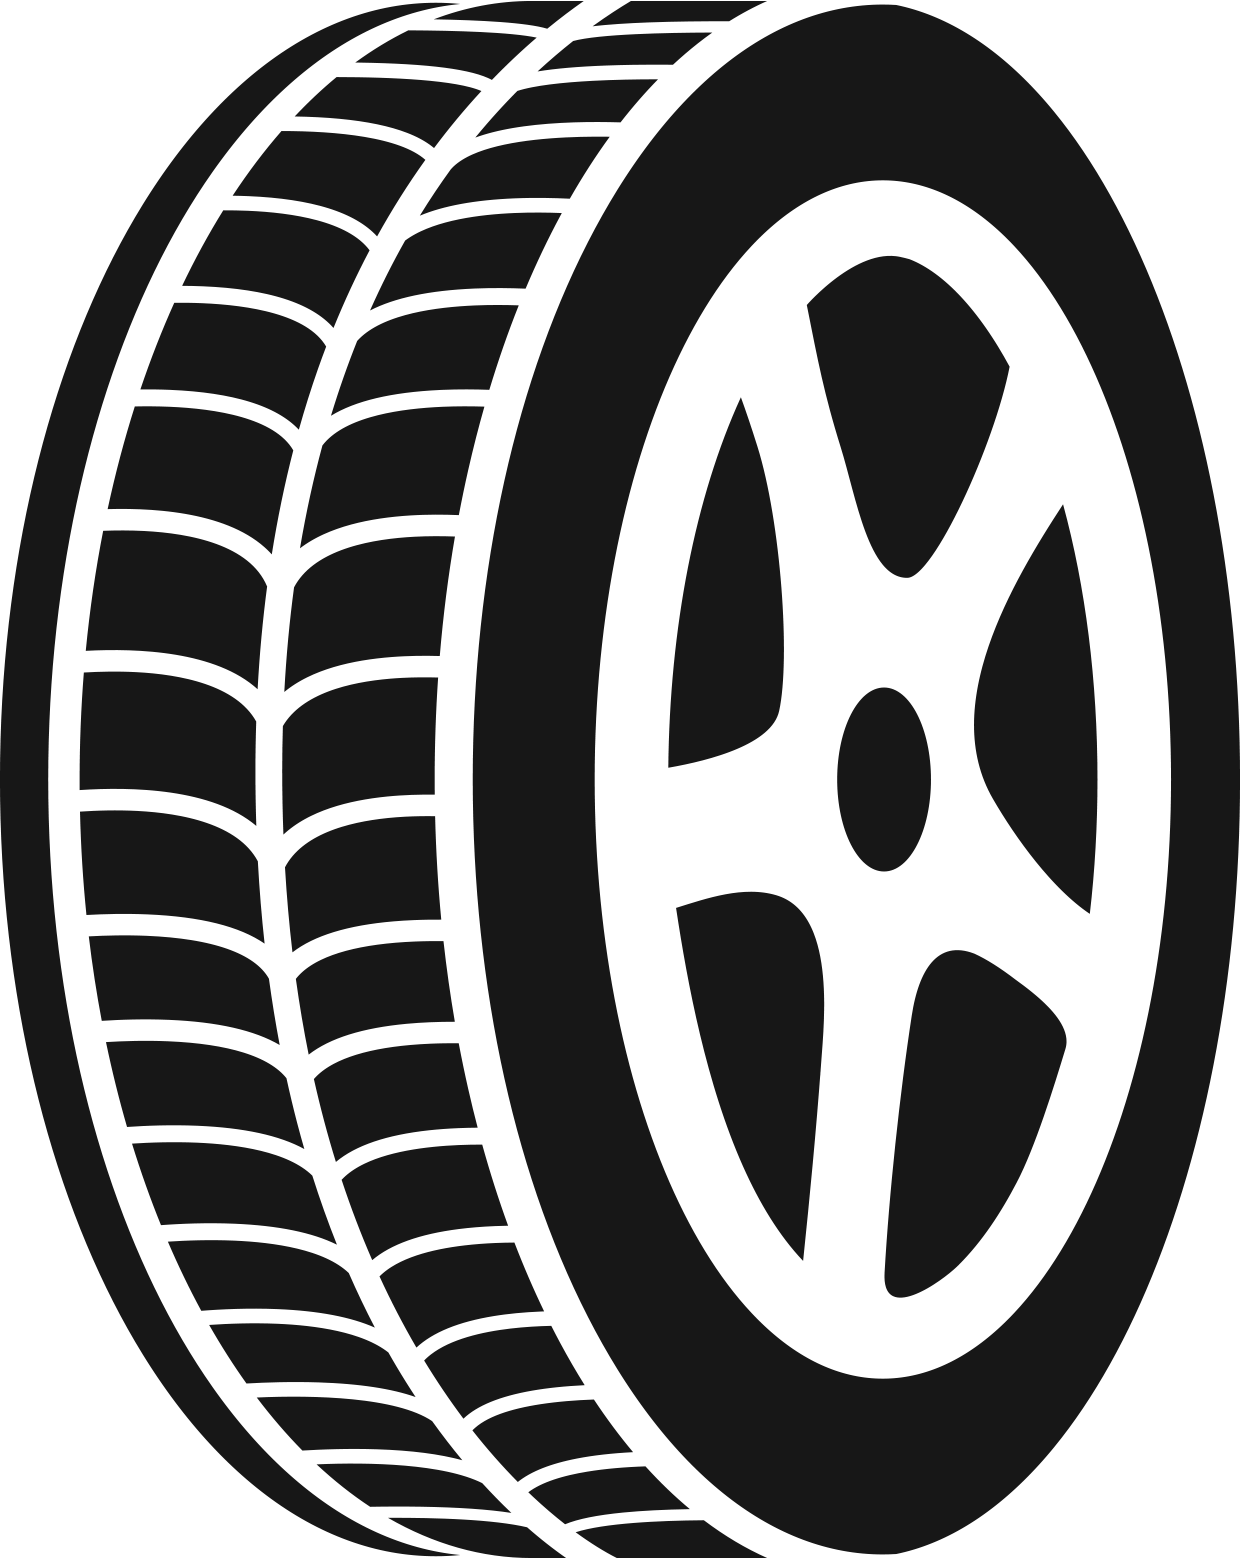 Track clipart truck tire track. Black and white of